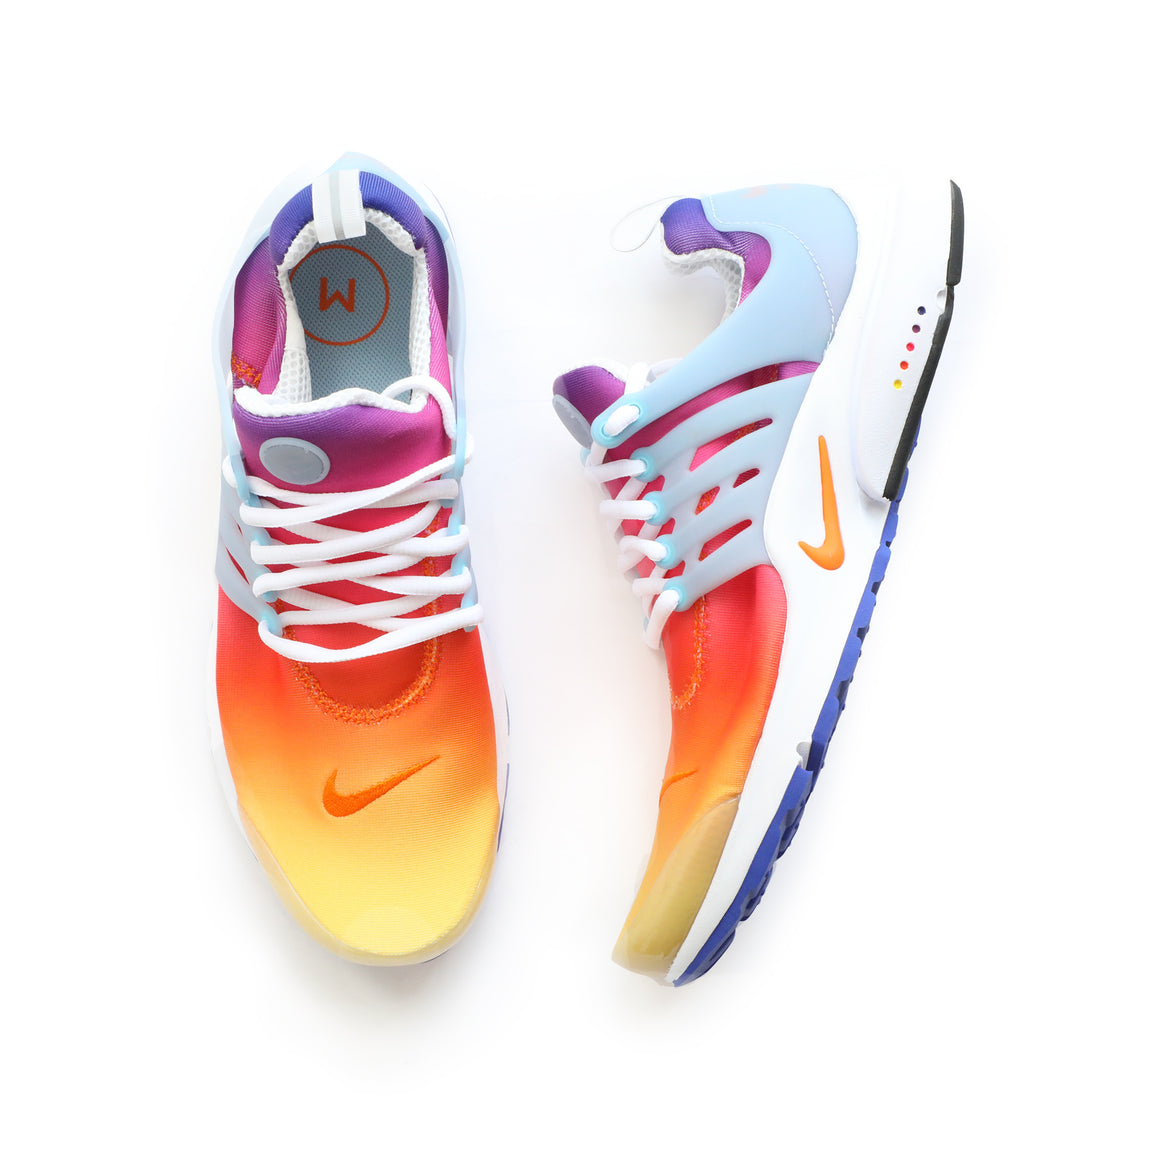 Nike Air Presto 'Sunrise' (University Gold/Hyper Crimson/Siren Red) - Nike Air Presto 'Sunrise' (University Gold/Hyper Crimson/Siren Red) -